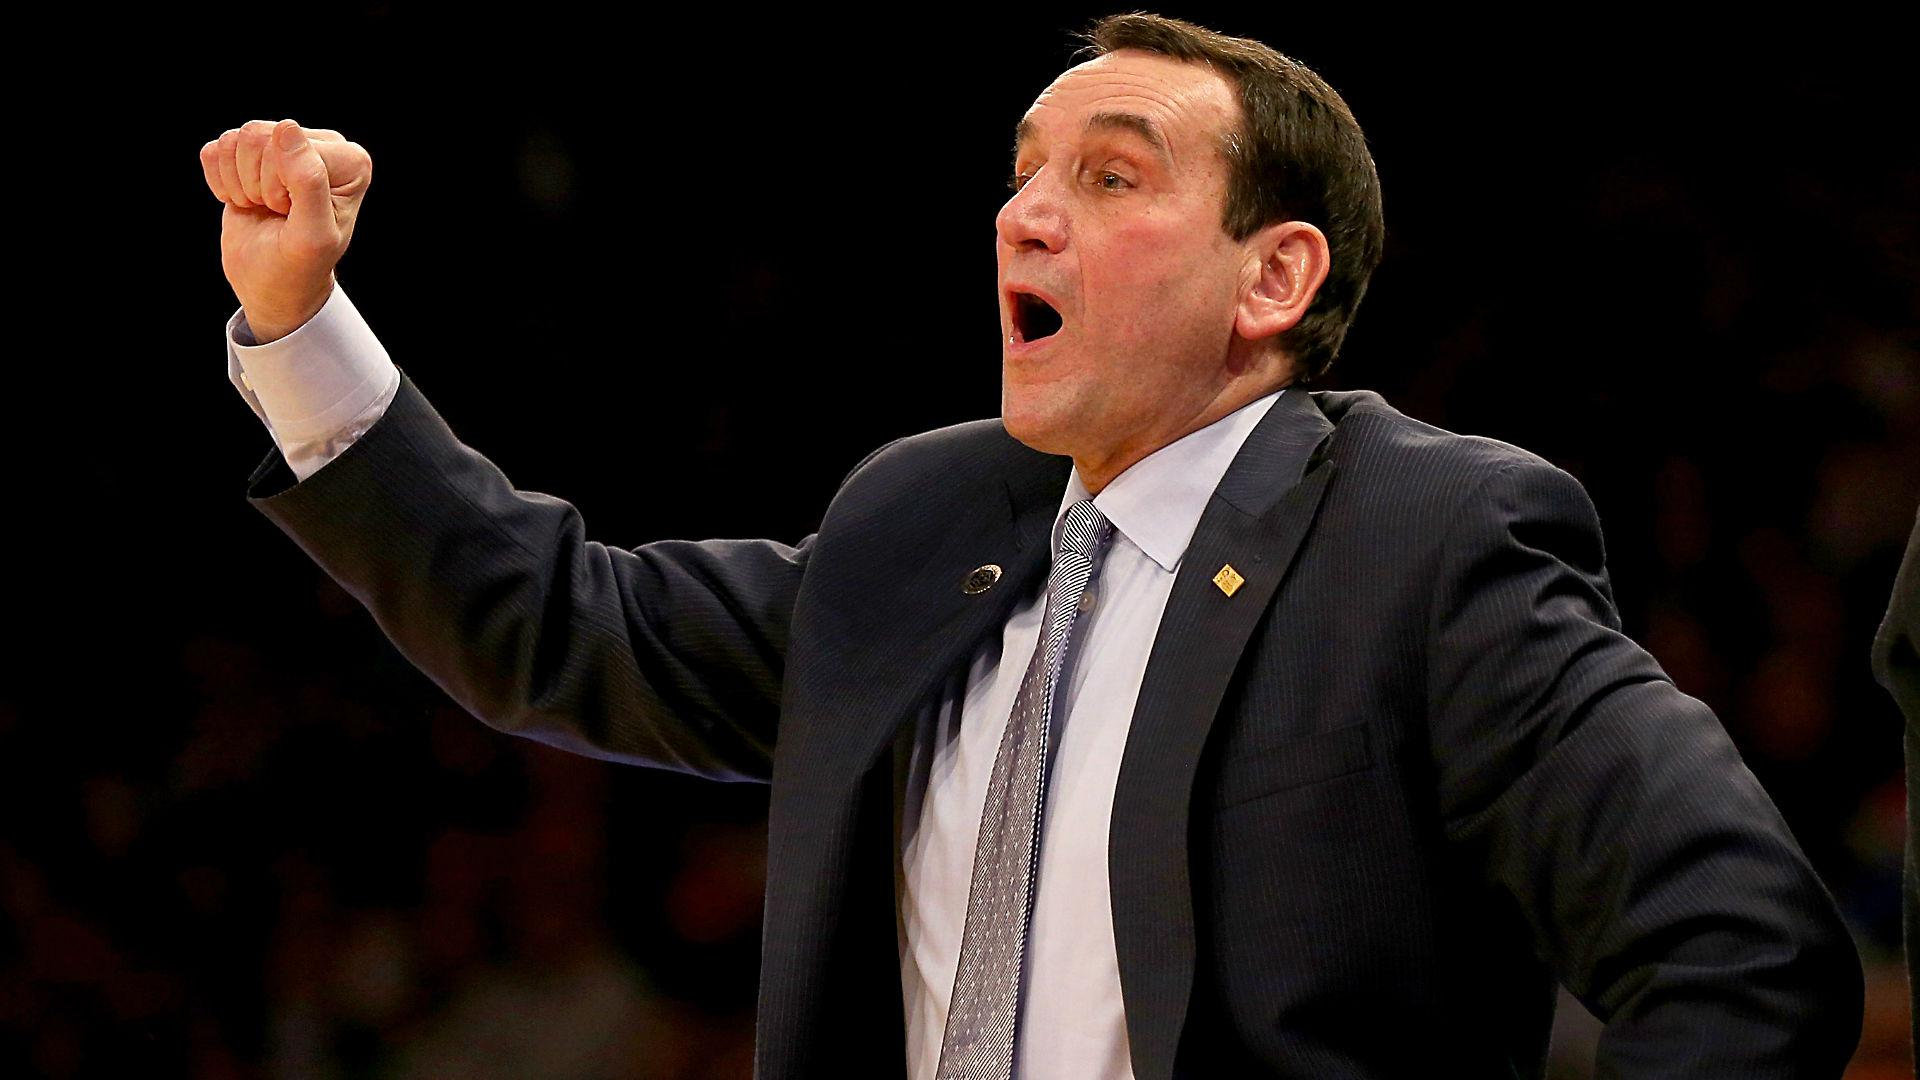 Kentucky Basketball Uk Has Second Best Odds To Win: 2019 NCAA Tournament Odds Tab Duke As Favorites To Win It All